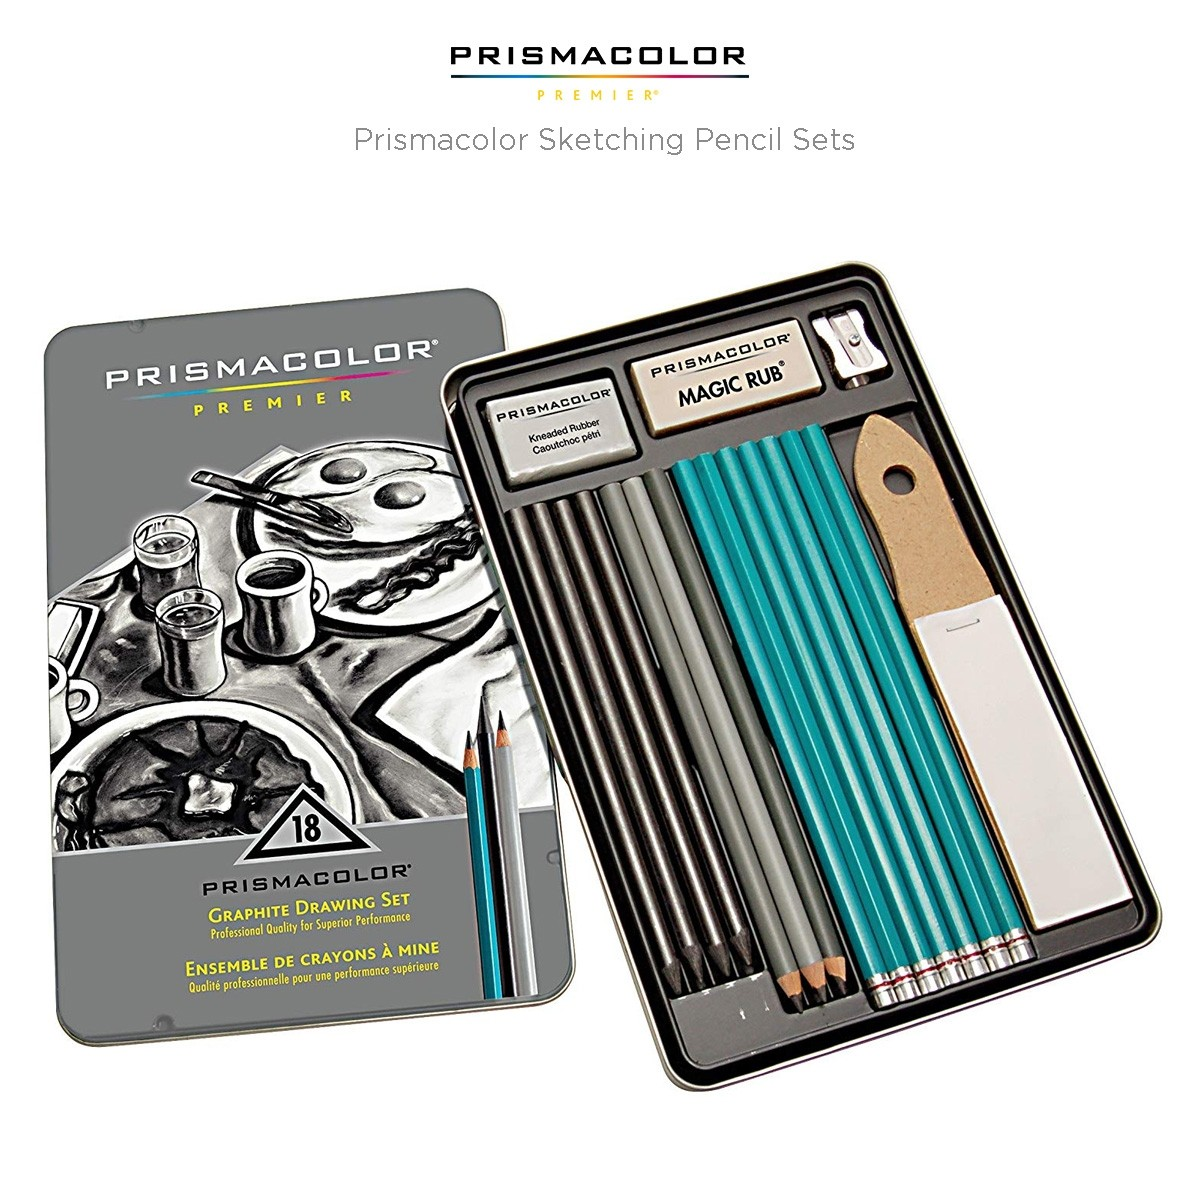 Prismacolor Sketching Pencil Sets